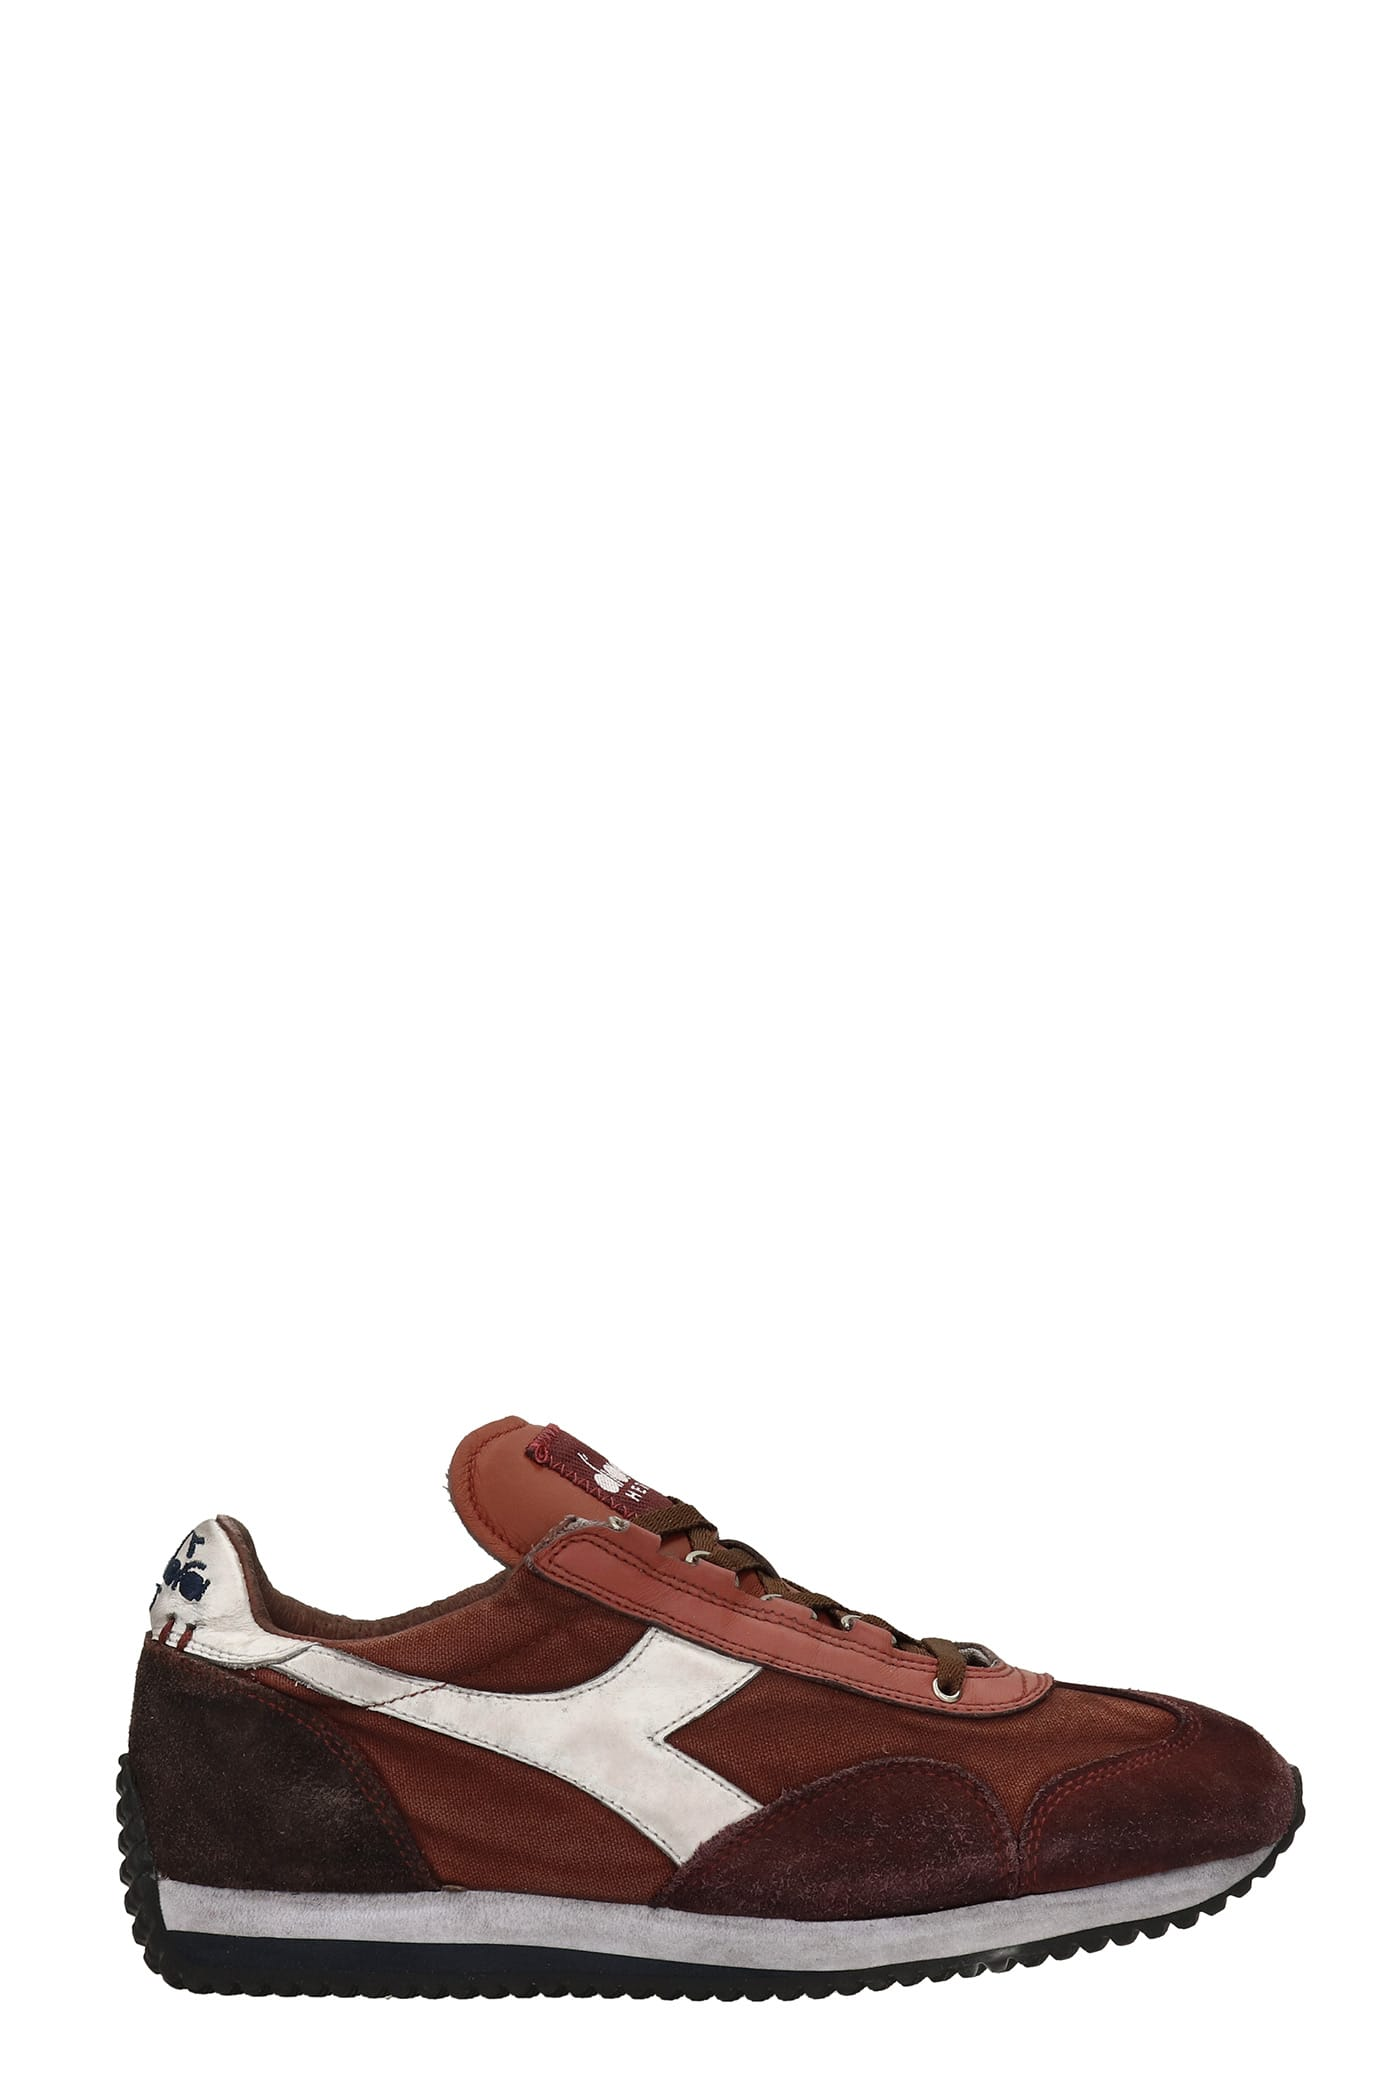 Equipe H Sneakers In Bordeaux Suede And Fabric